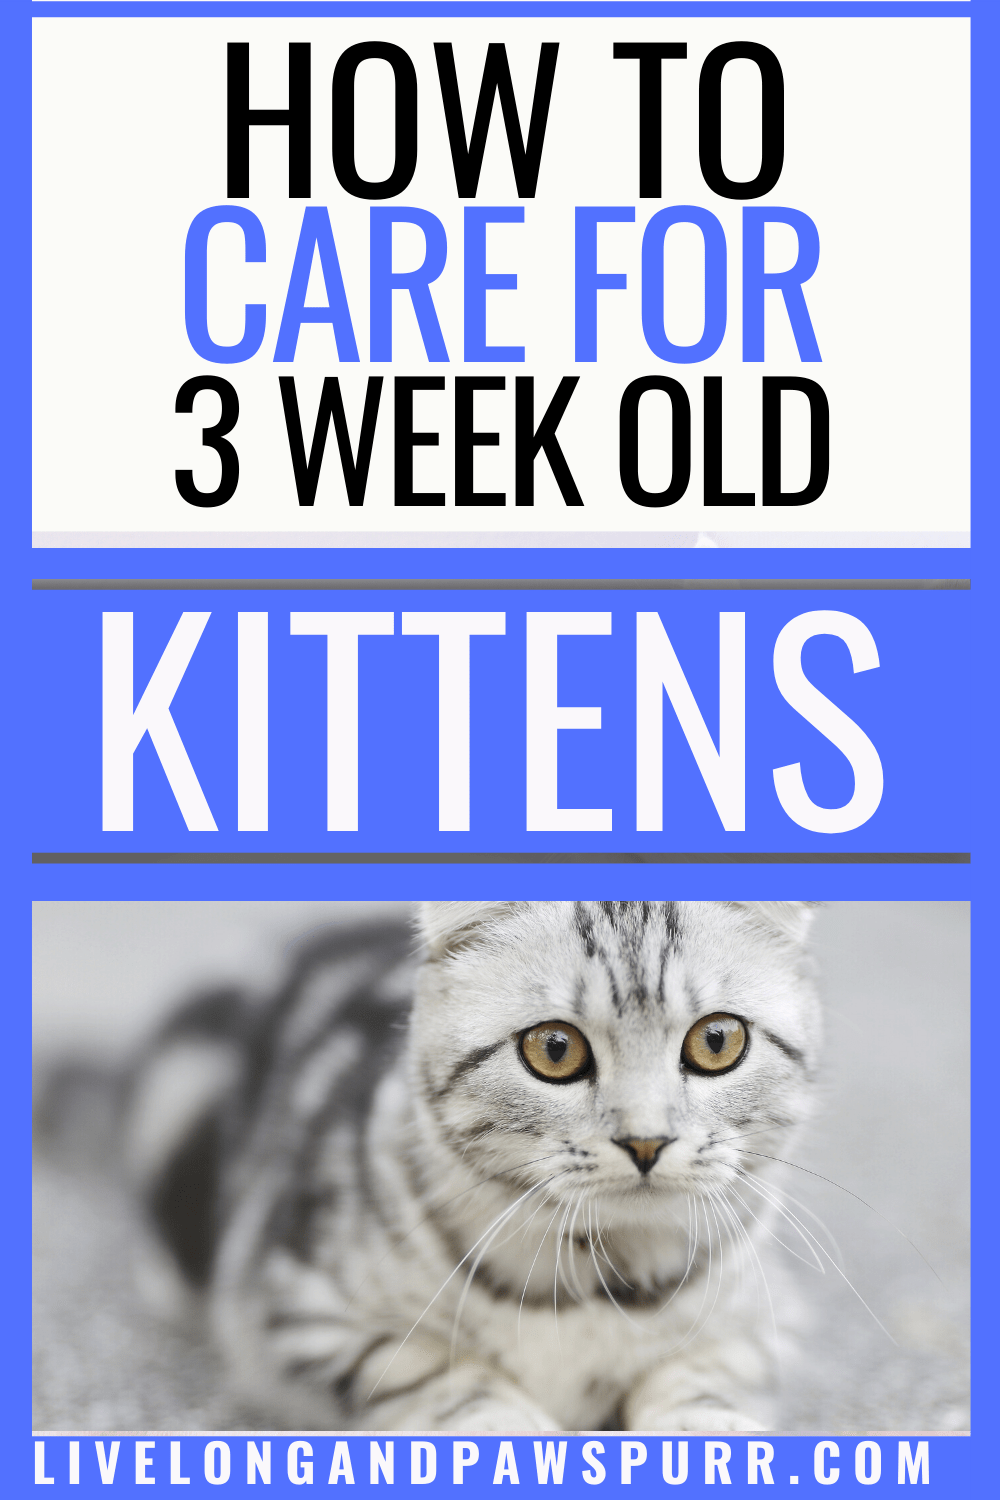 The Simple Guide To Caring About Three Week Old Kittens Live Long And Pawspurr In 2020 Kitten Care Pet Care Cats Kittens